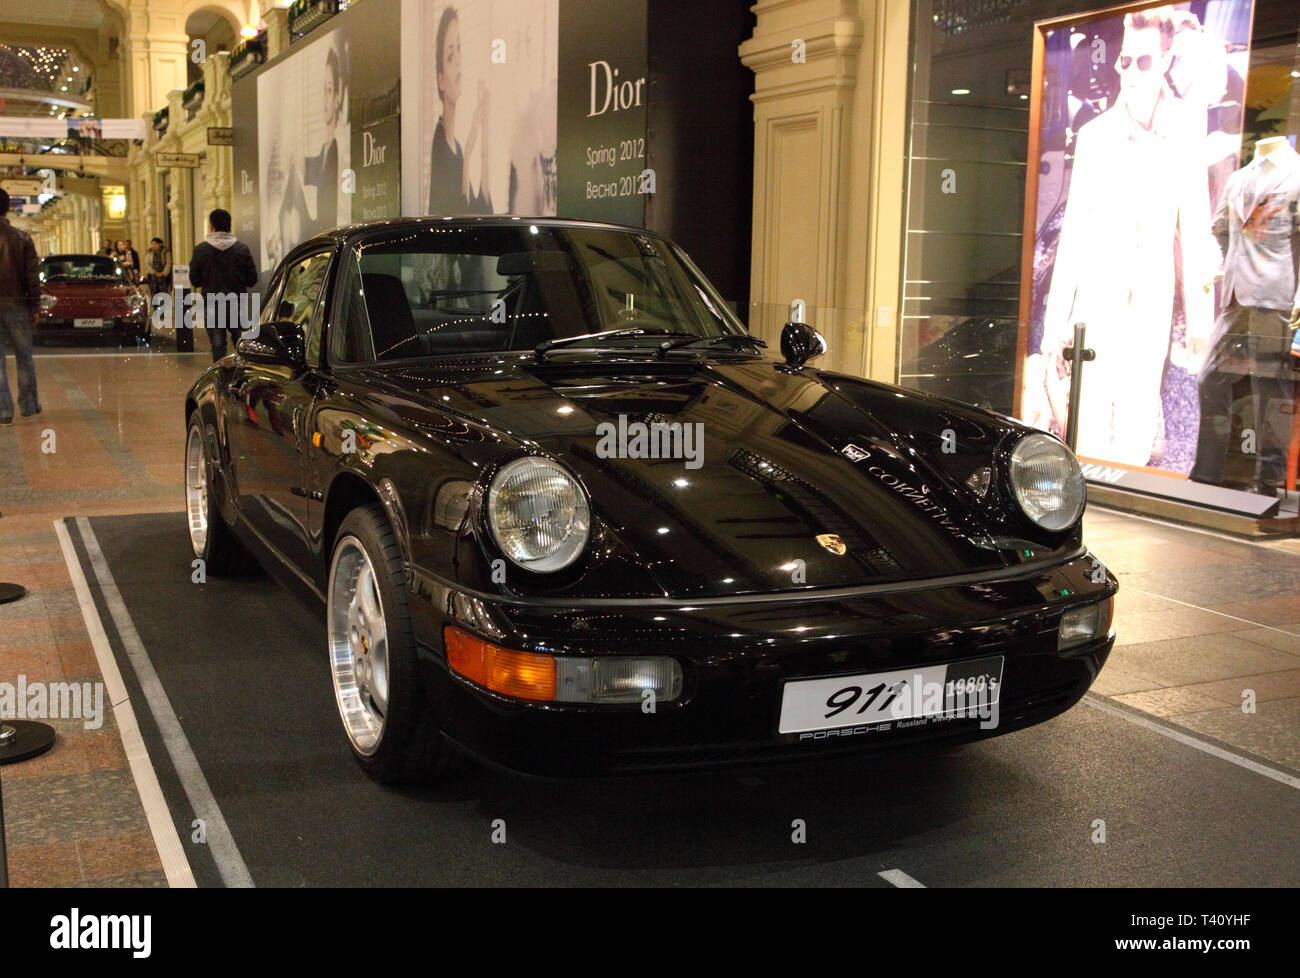 Garage Porsche Strasbourg Porsche Night Stock Photos Porsche Night Stock Images Alamy